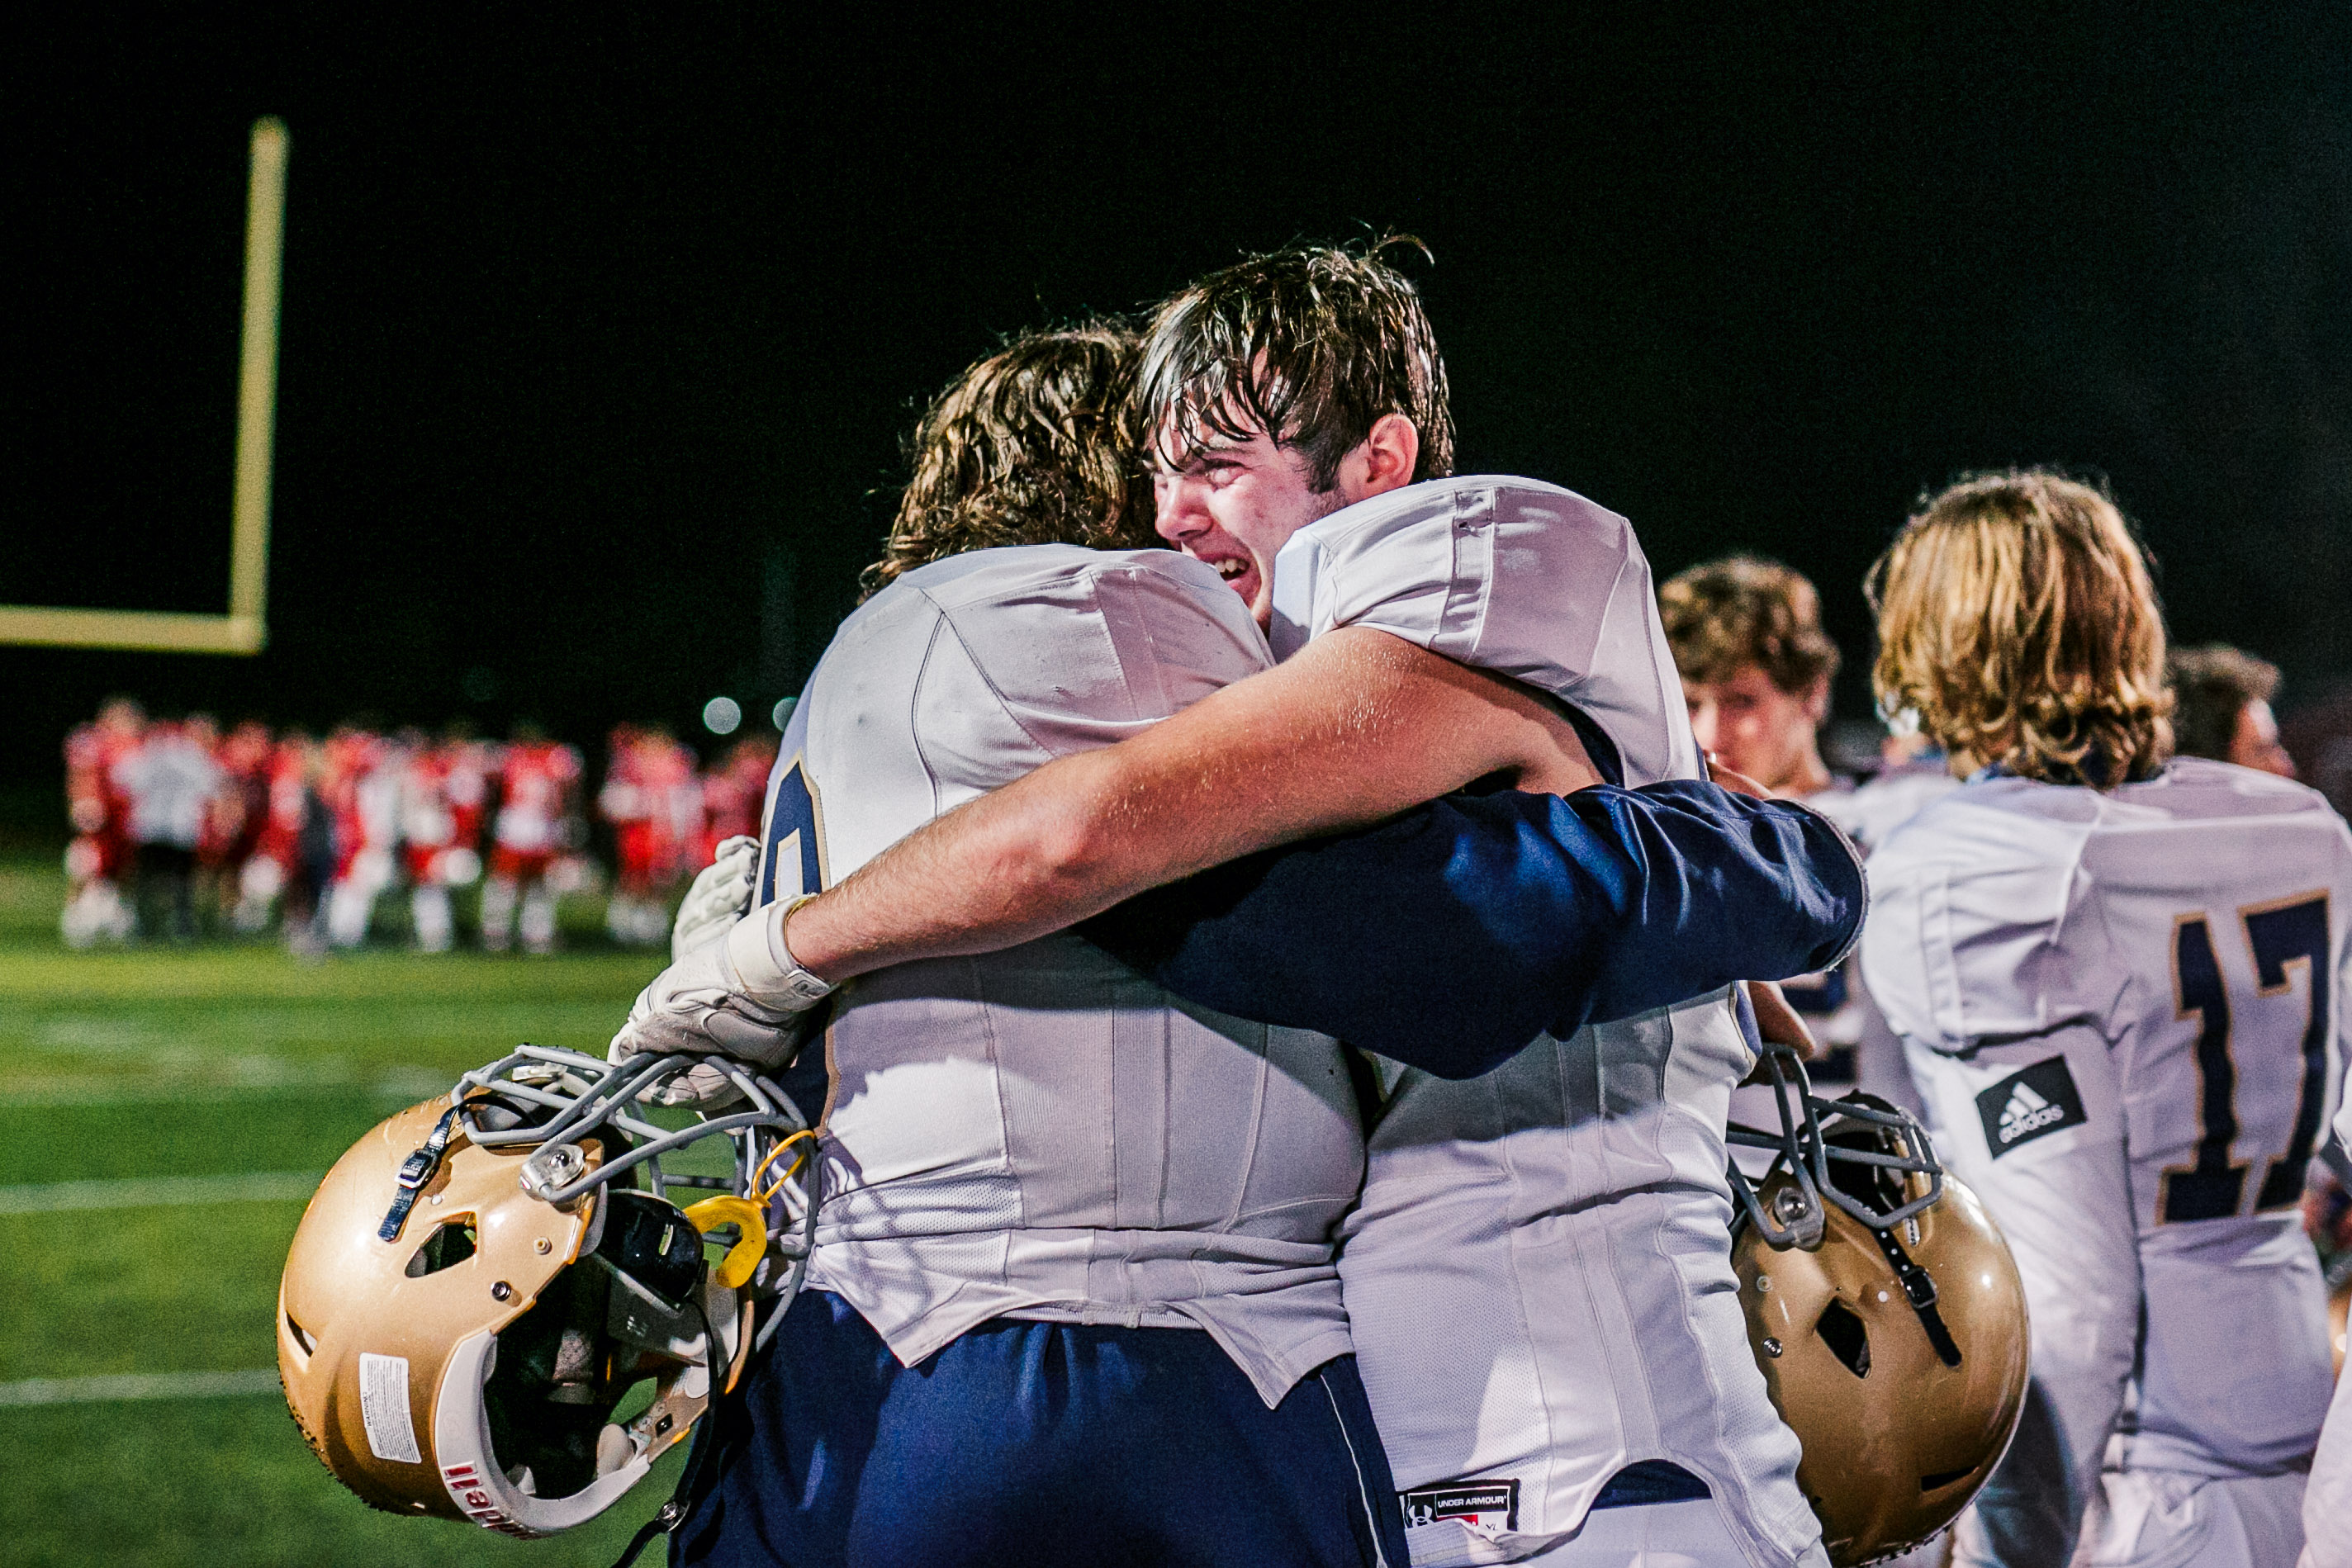 West Chester Rustin's Jack Shoup, right, and Connor McQuiston embrace after the 29-8 loss to Upper Dublin. (Nate Heckenberger - For MediaNews Group)